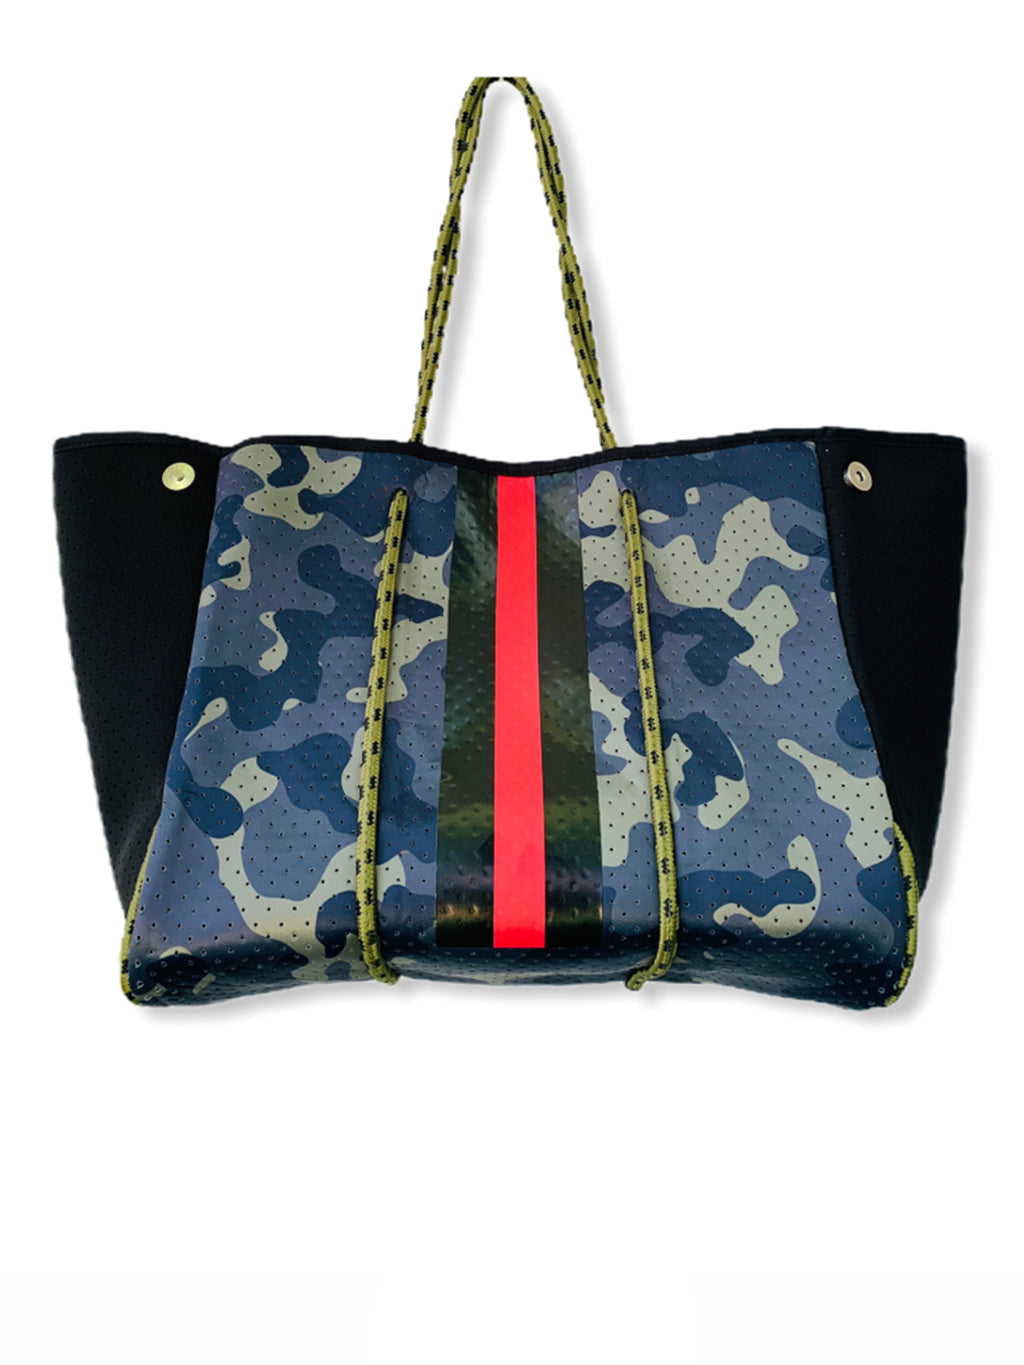 Neoprene Tote Bag Dark Camo Red Stripe